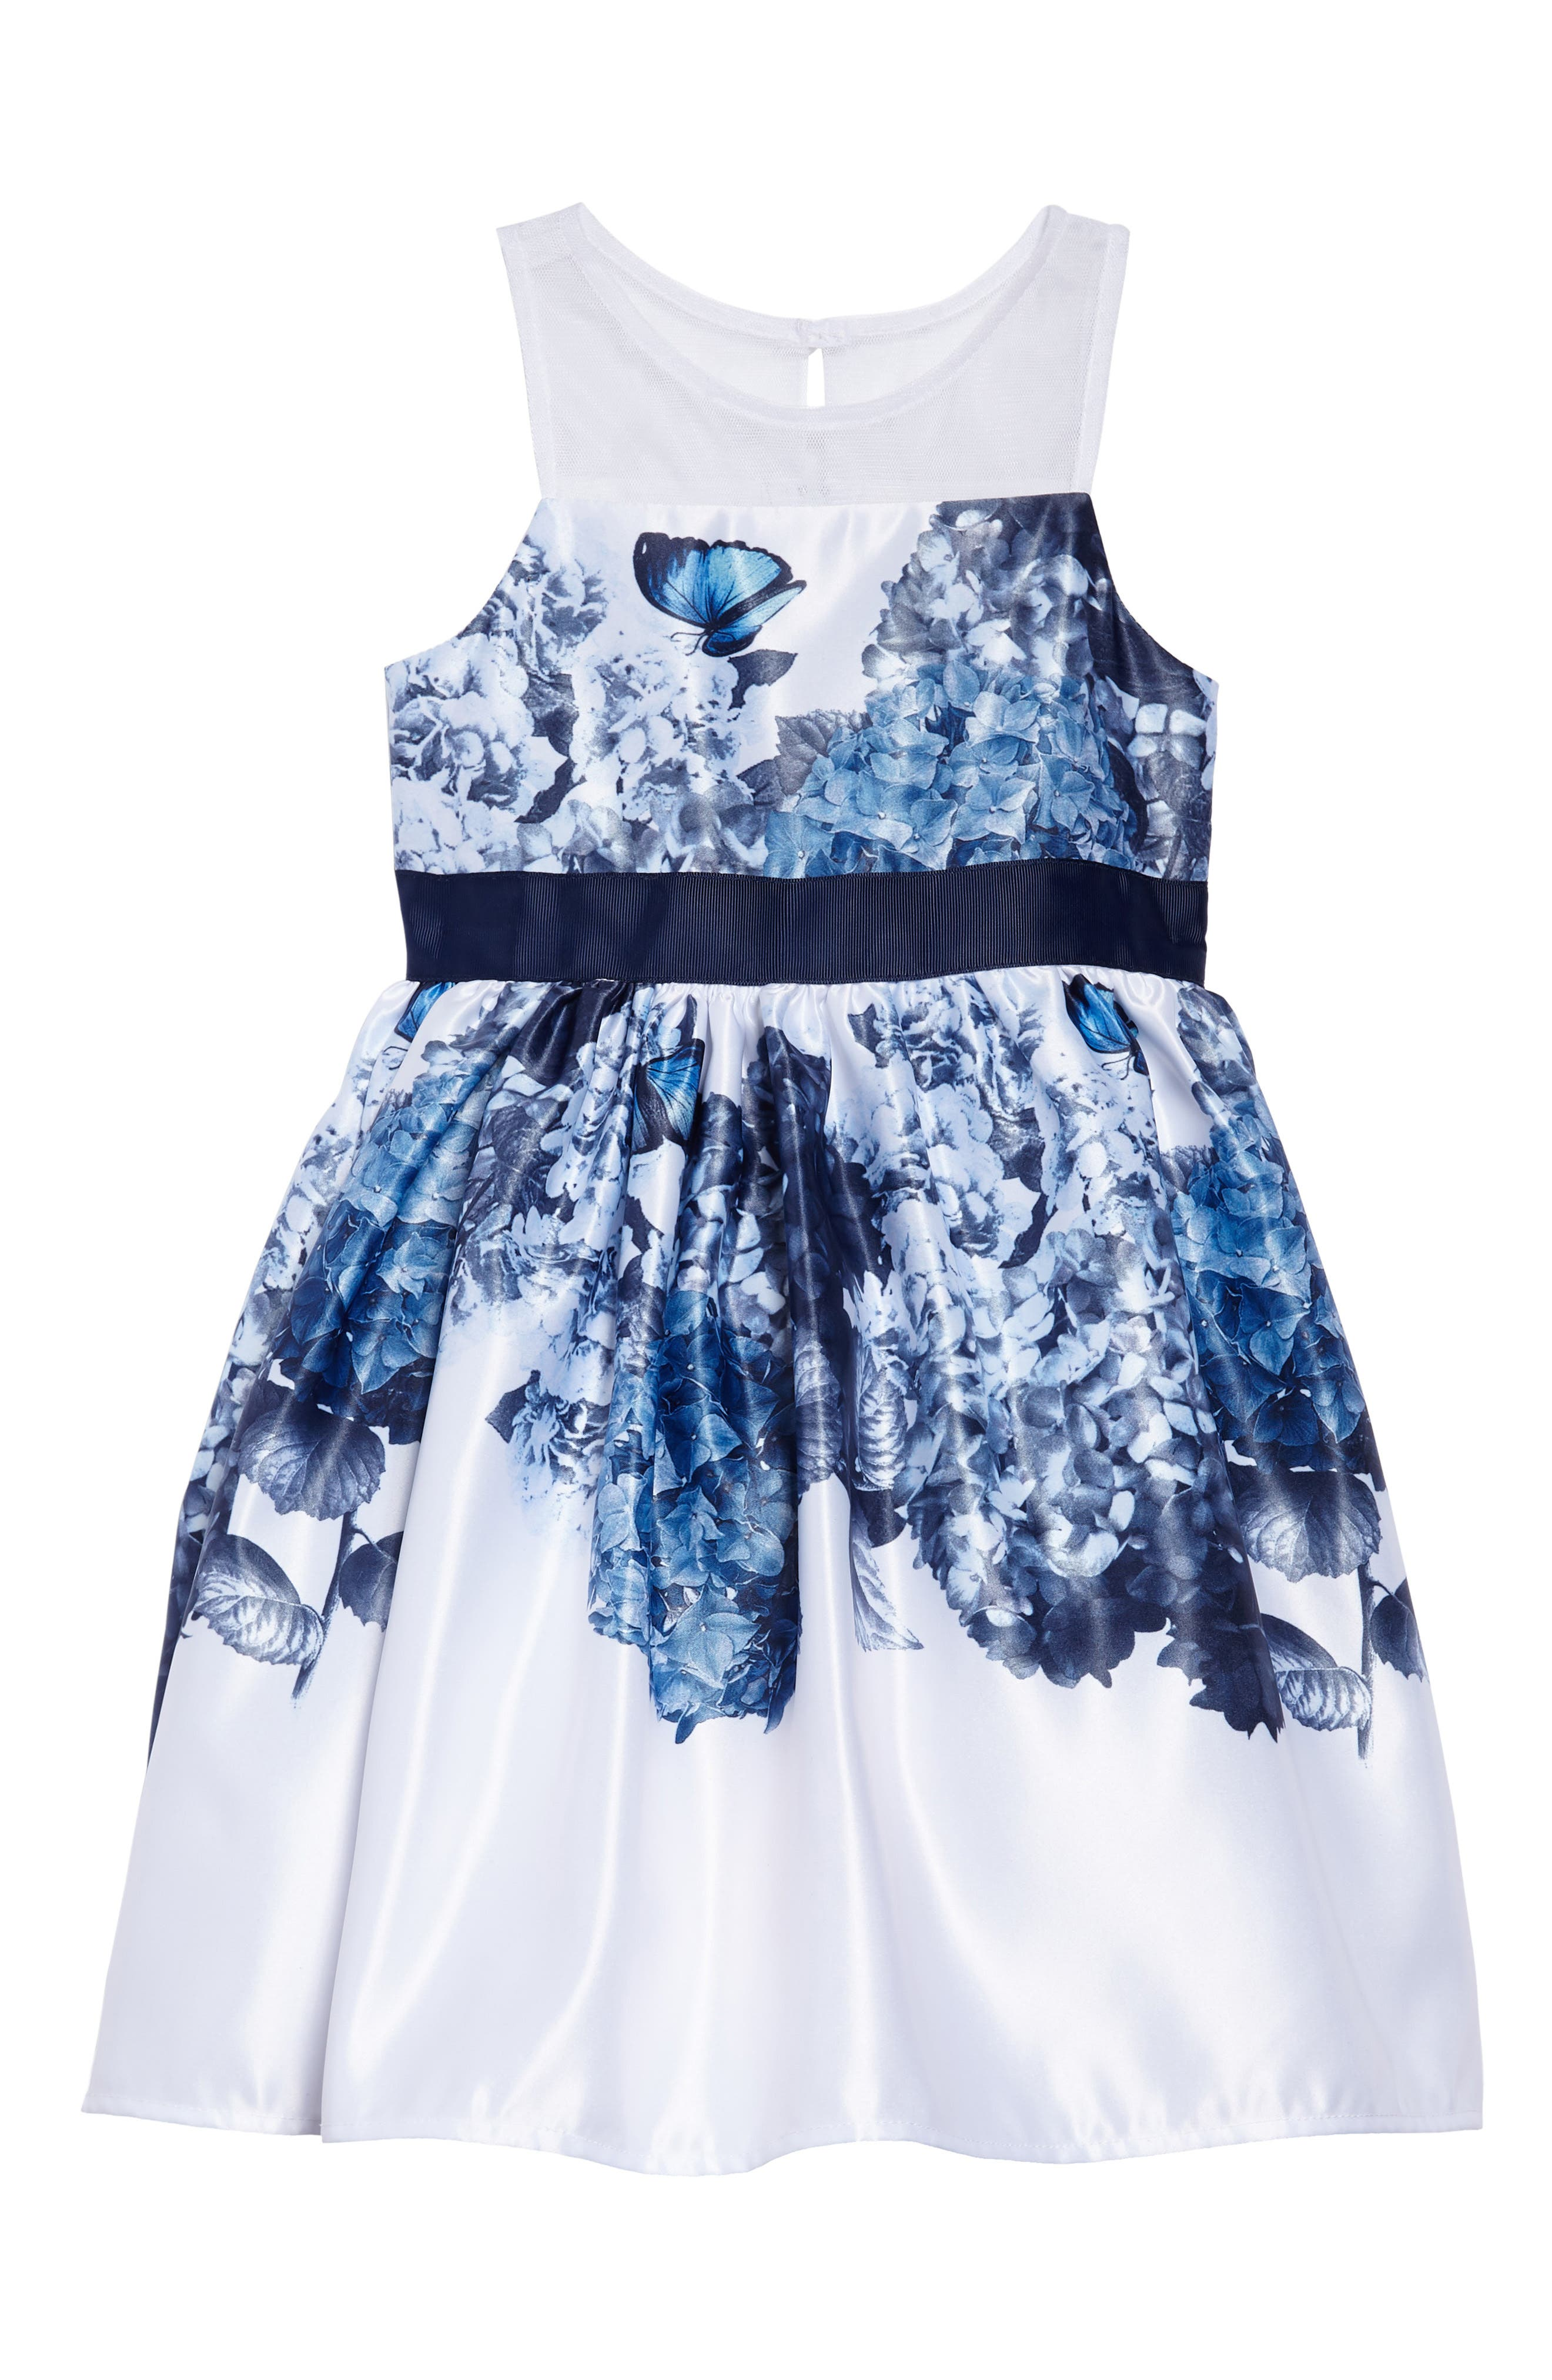 Floral Fit & Flare Satin Party Dress,                         Main,                         color, Blue/ White